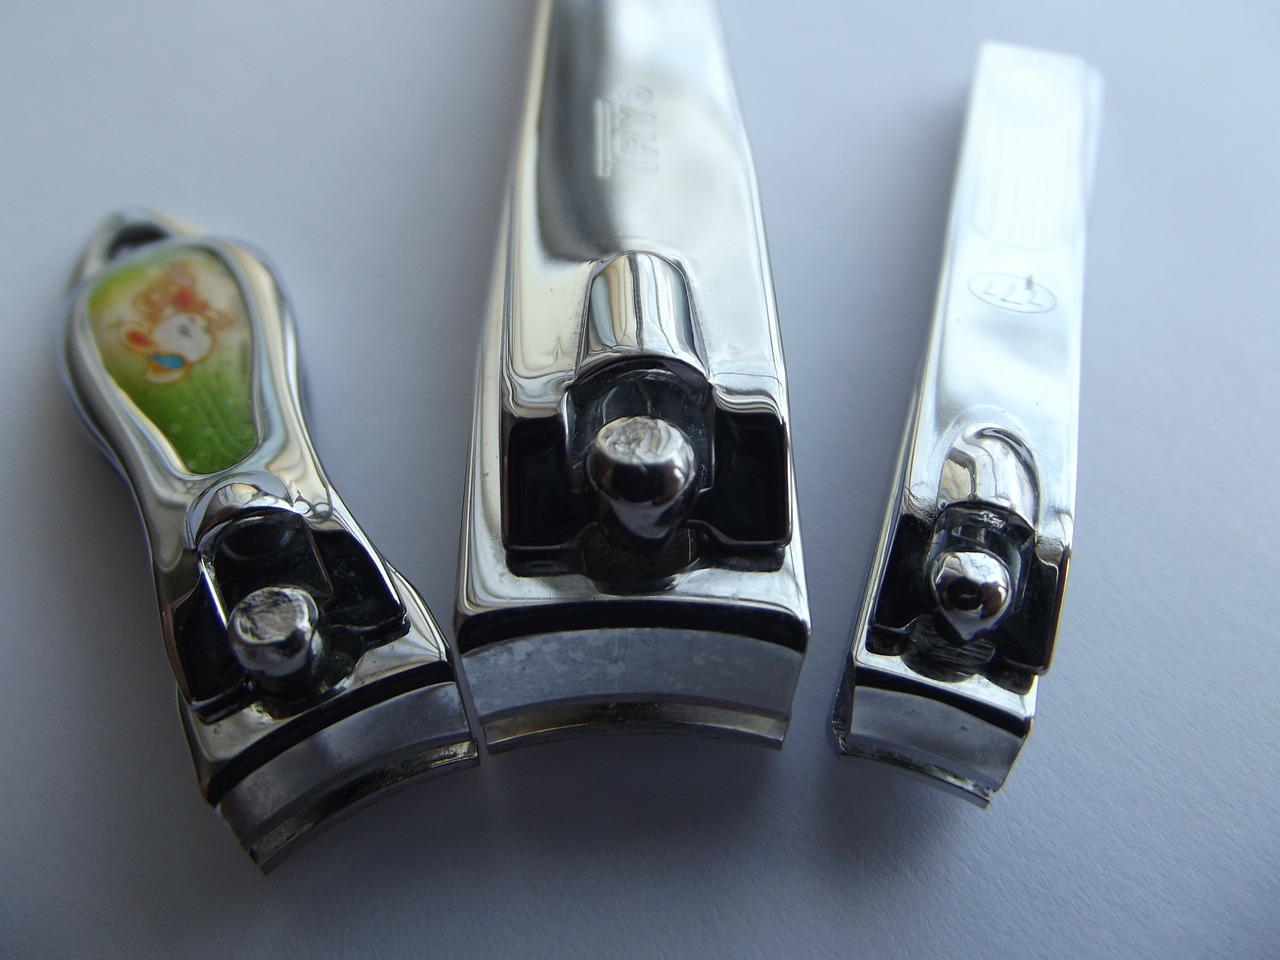 nail-clippers-106382_1280